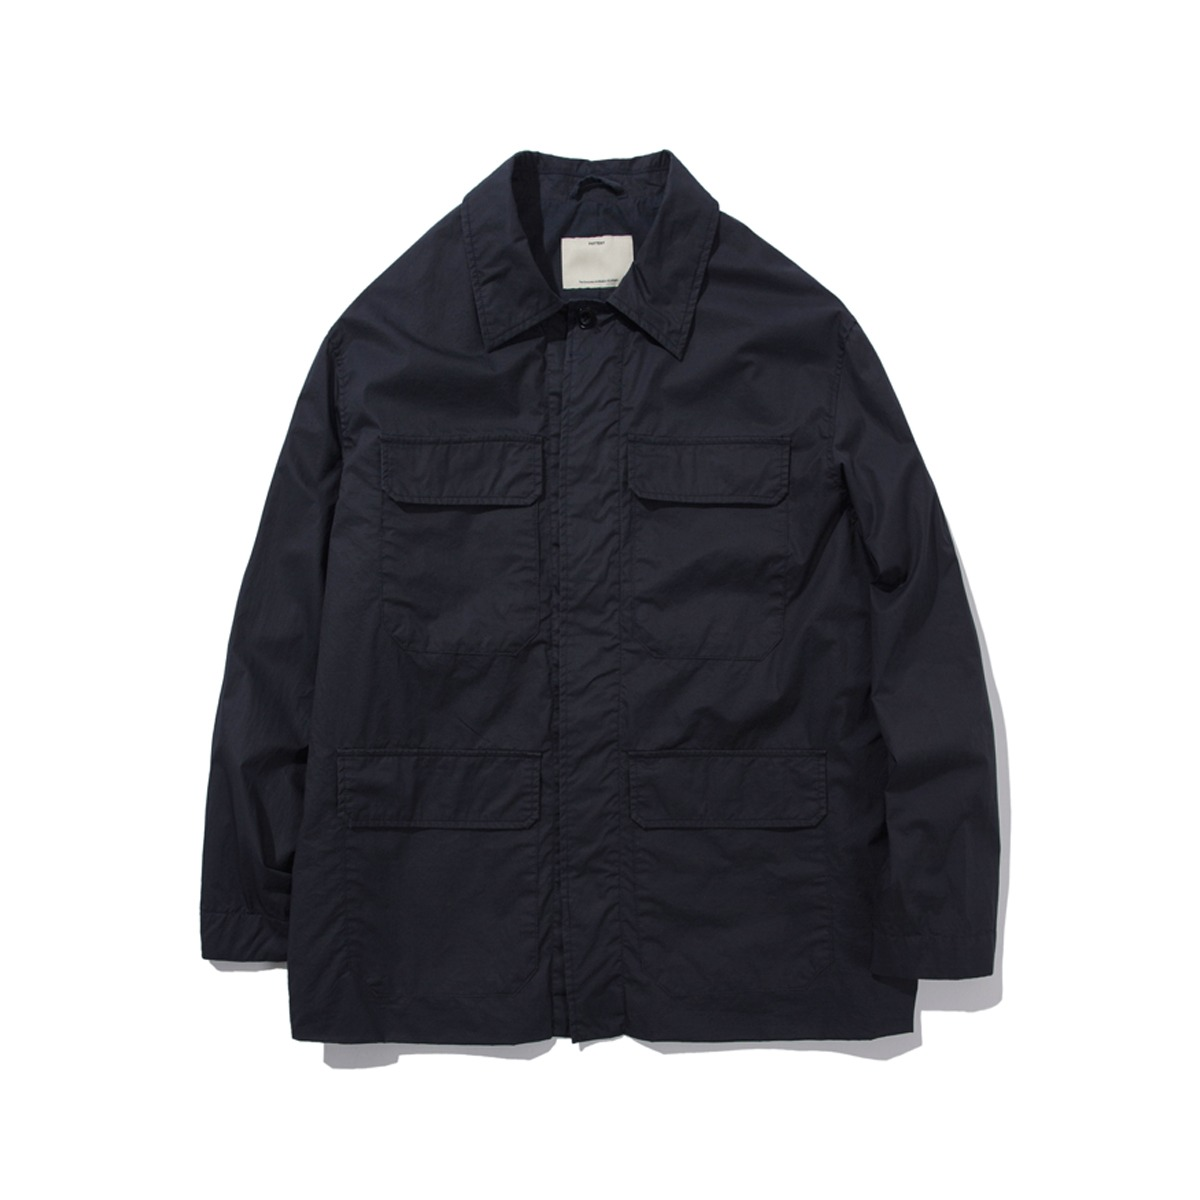 [POTTERY]  COTTON FATIGUE JACKET 'NAVY'